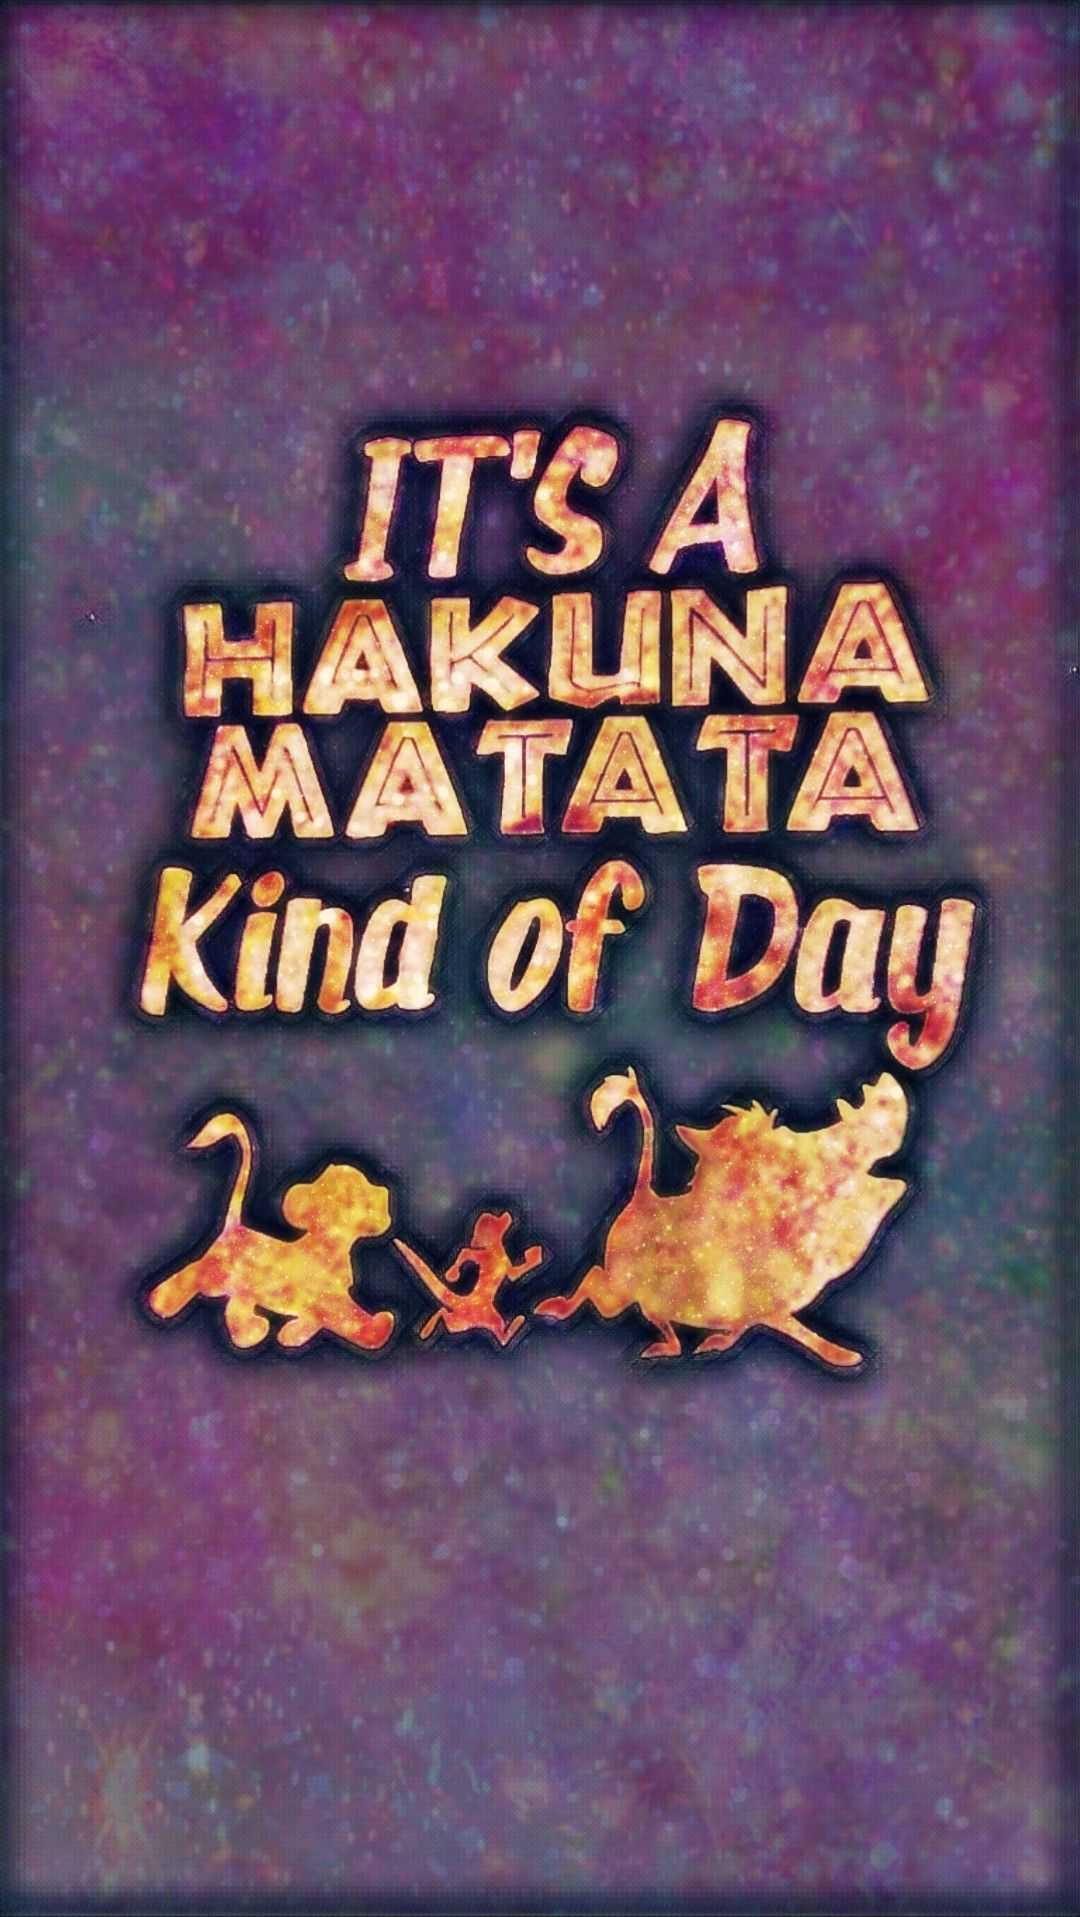 Hakuna Matata Galaxy Made By Me Purple Sparkly Wallpapers Backgrounds Sparkles Glittery Galaxy Qu Hakuna Matata Hakuna Matata Quotes Hipster Wallpaper